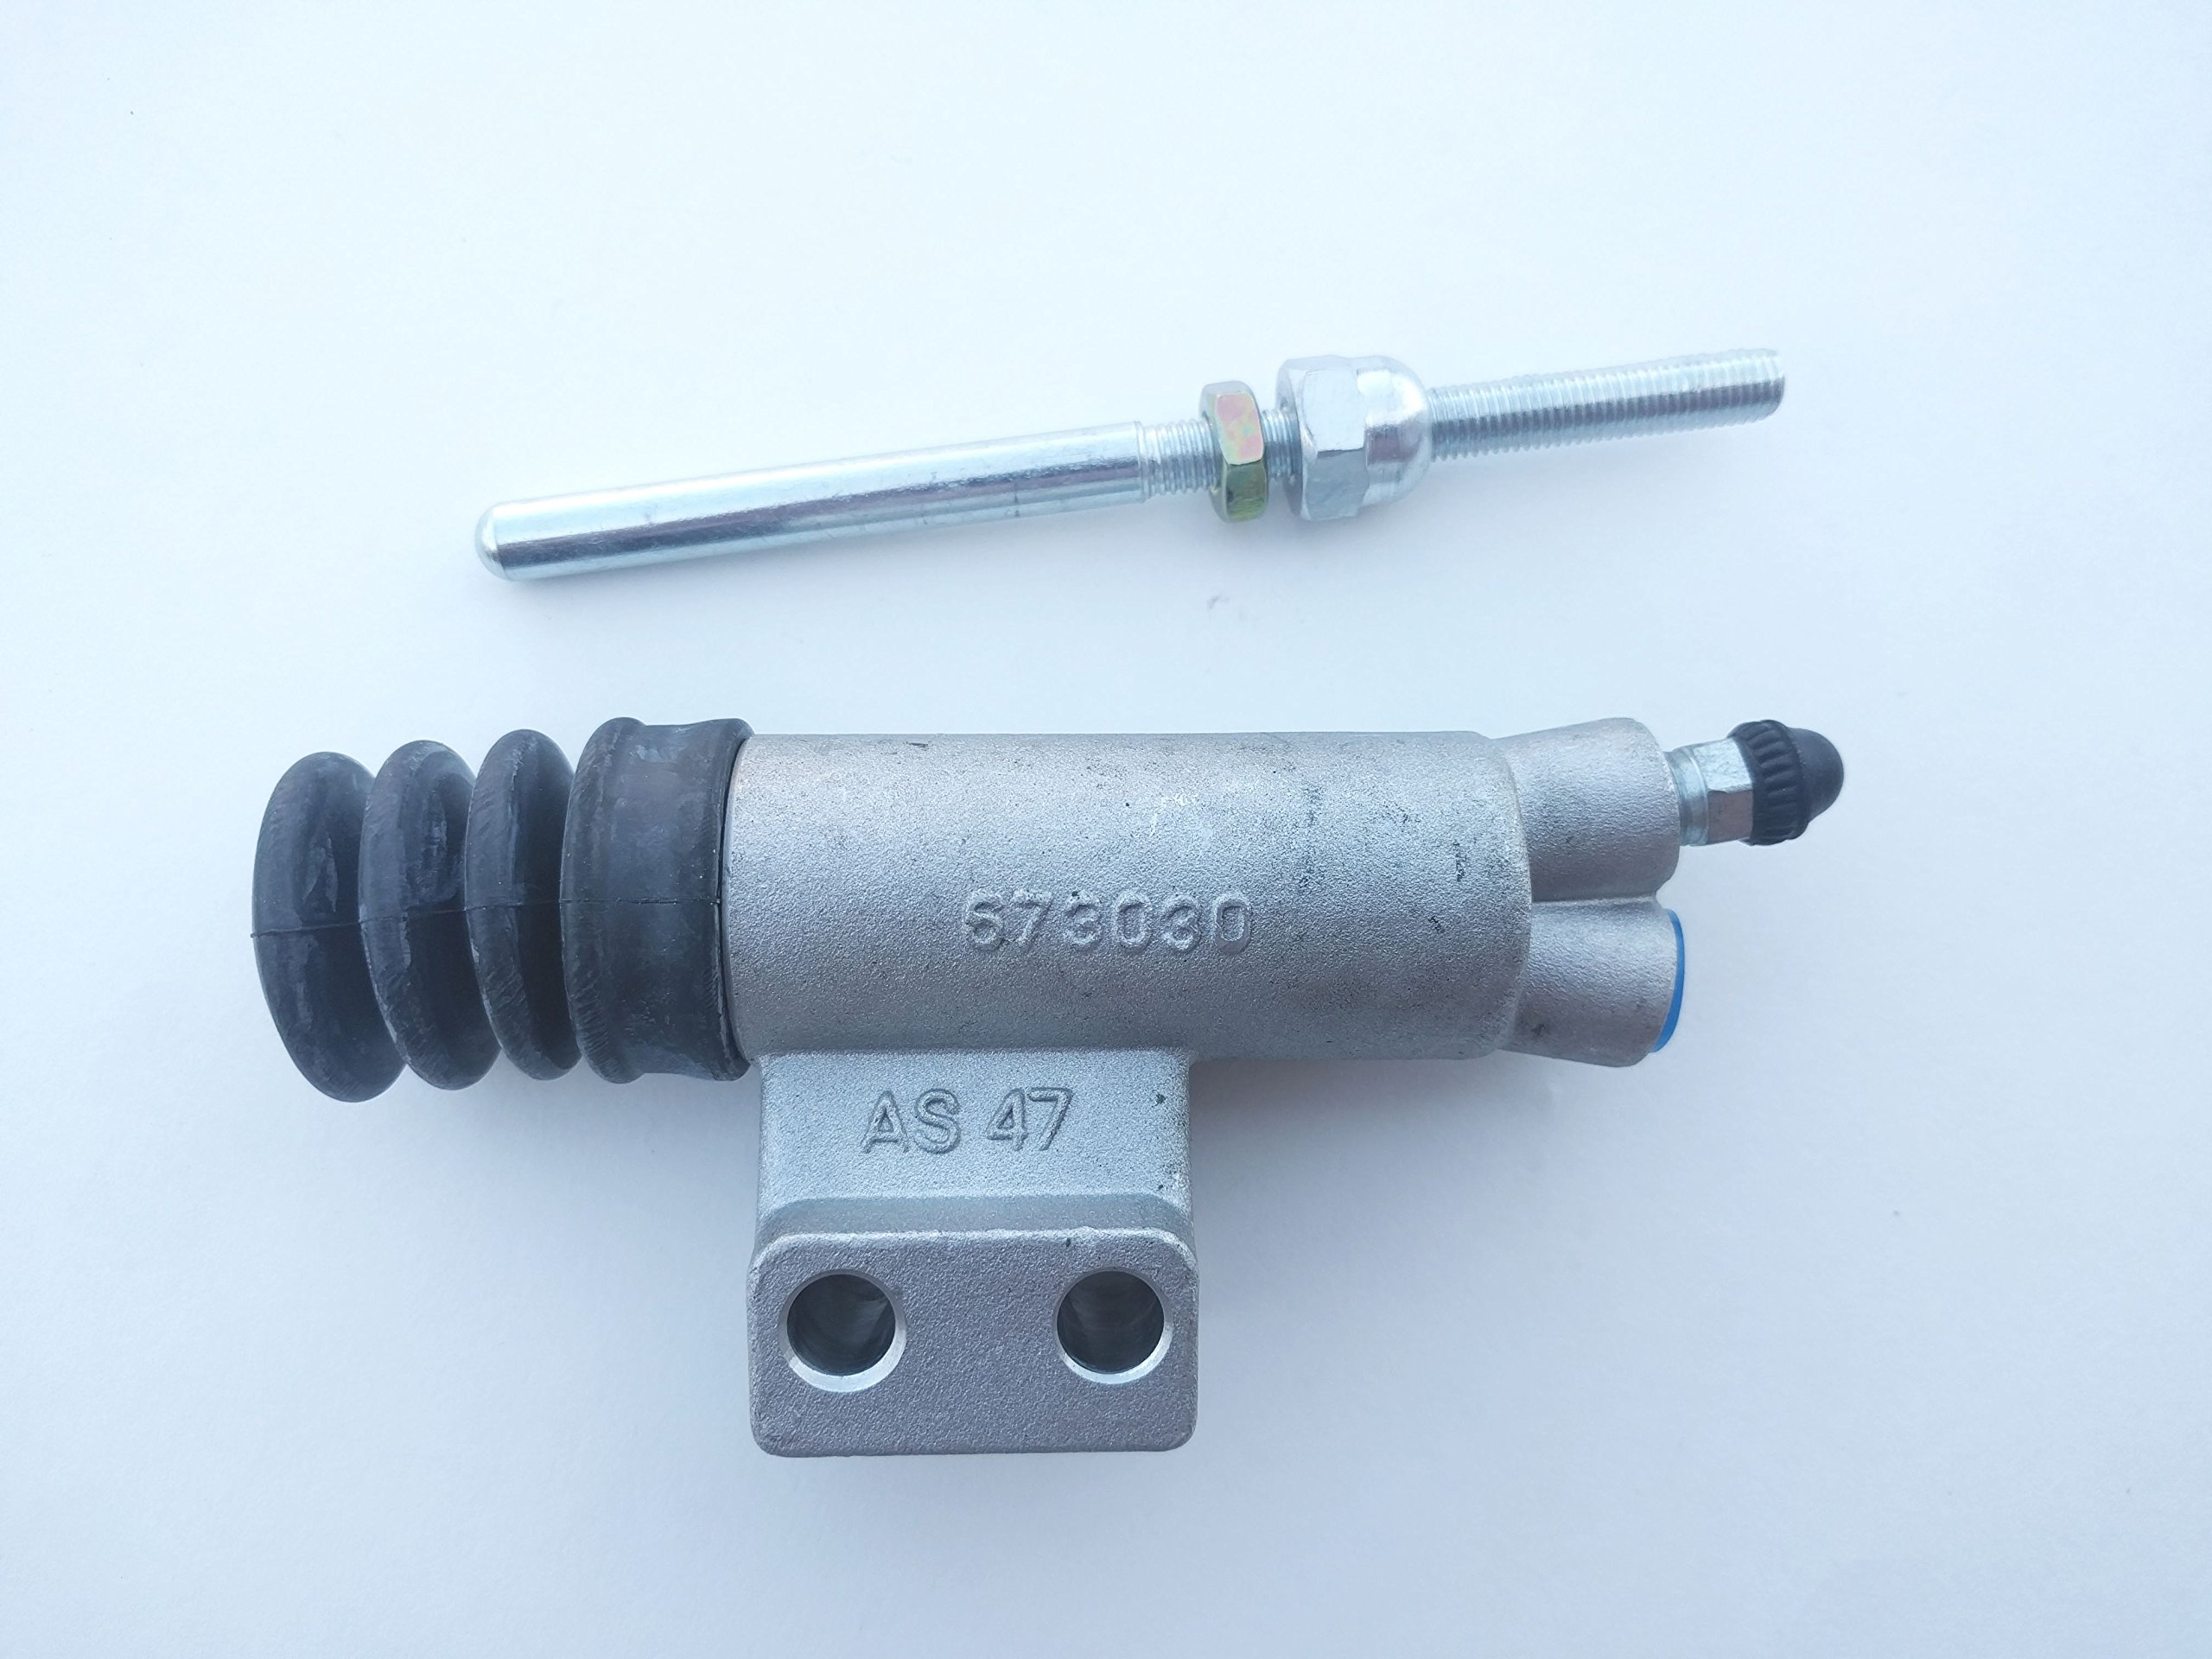 Volvo 122 ('62-'68) Volvo 1800 ('62-'73) Clutch Slave Cylinder KIT NEW 673030 with Actuator Rod and Protective Boot.